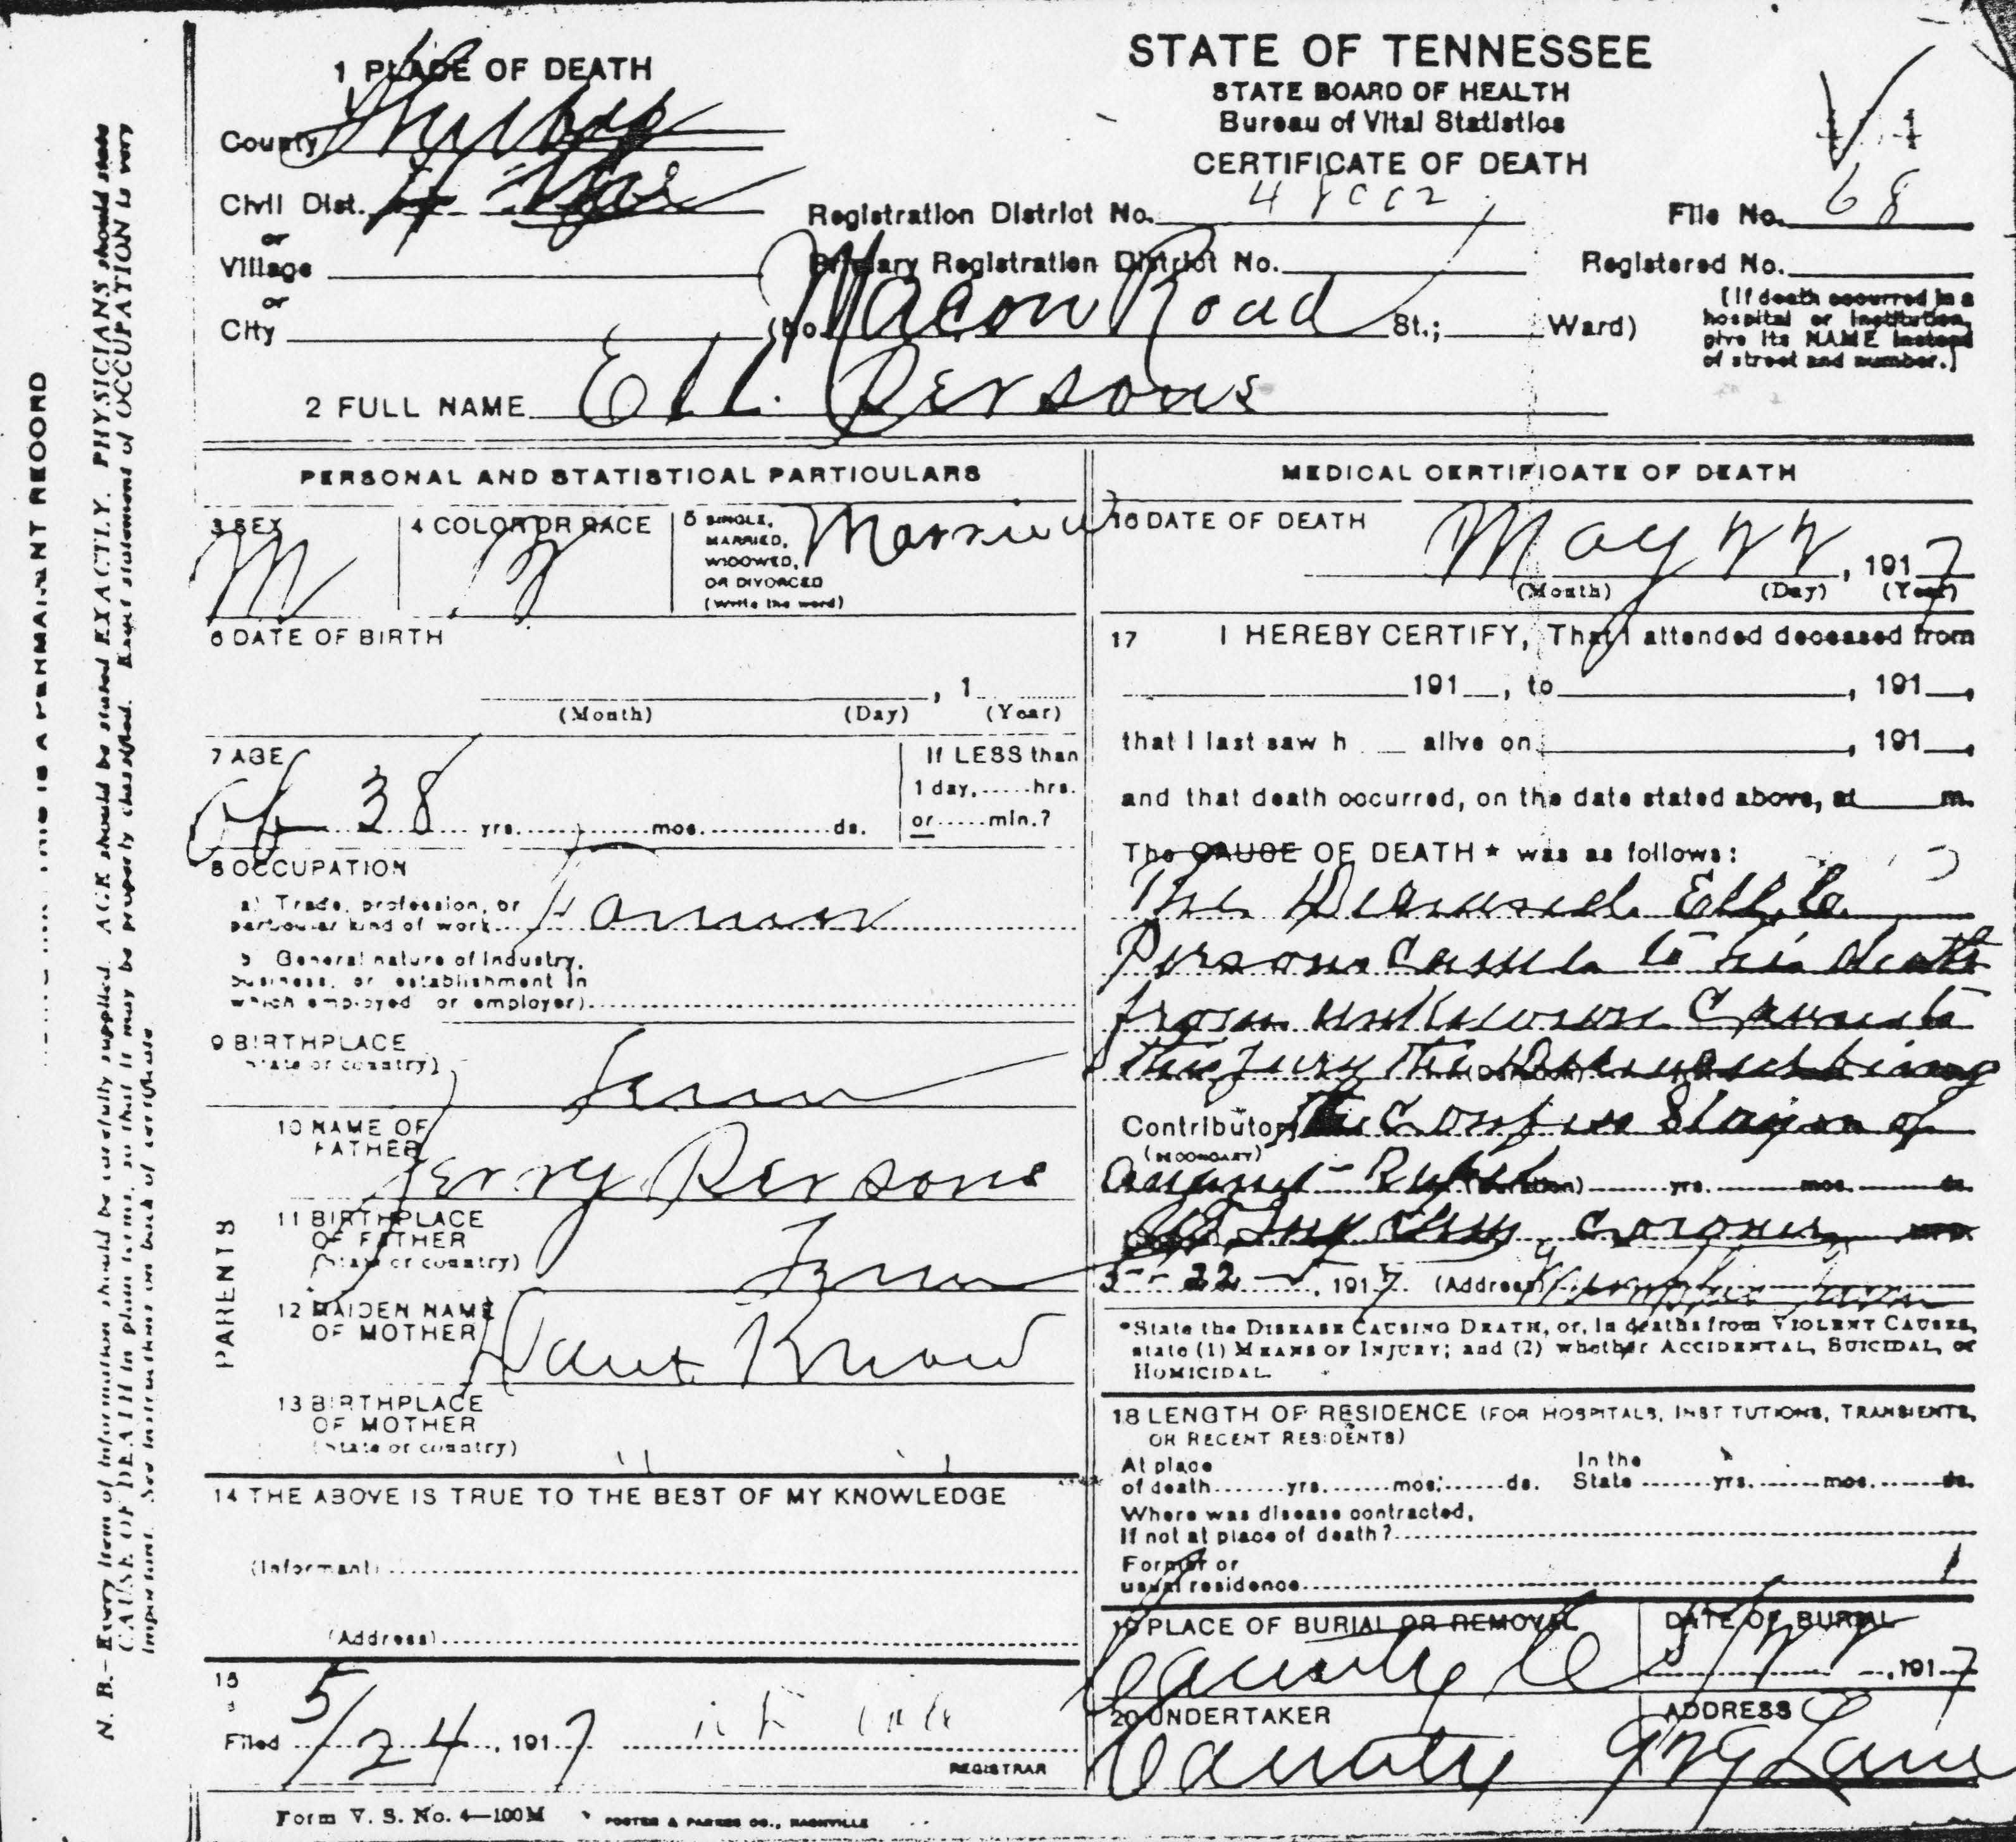 Ell Persons Death Certificate 5 24 1917 The Lynching